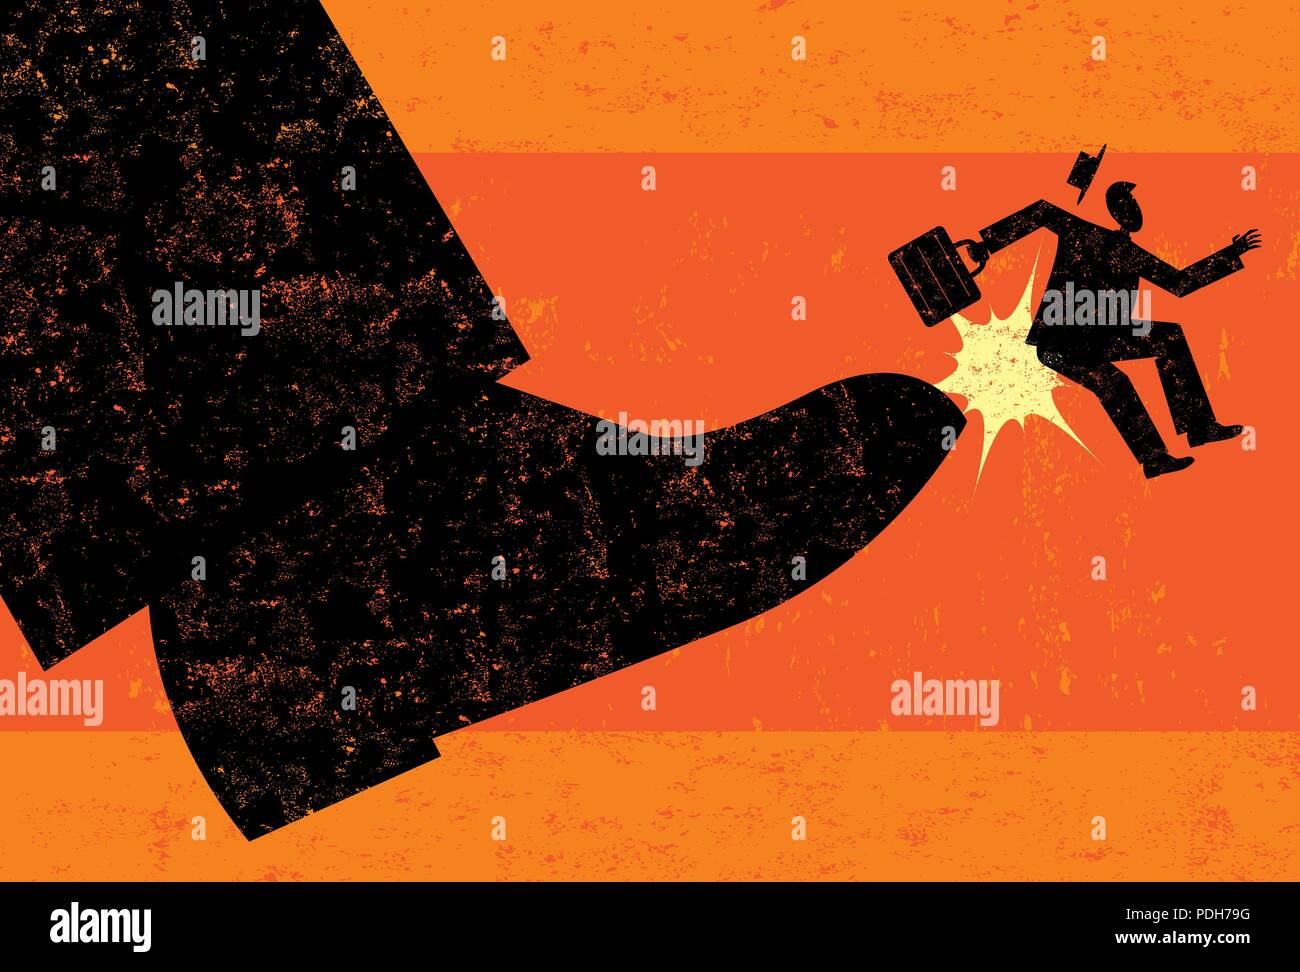 Getting Fired. A businessman getting booted from his job. - Stock Image